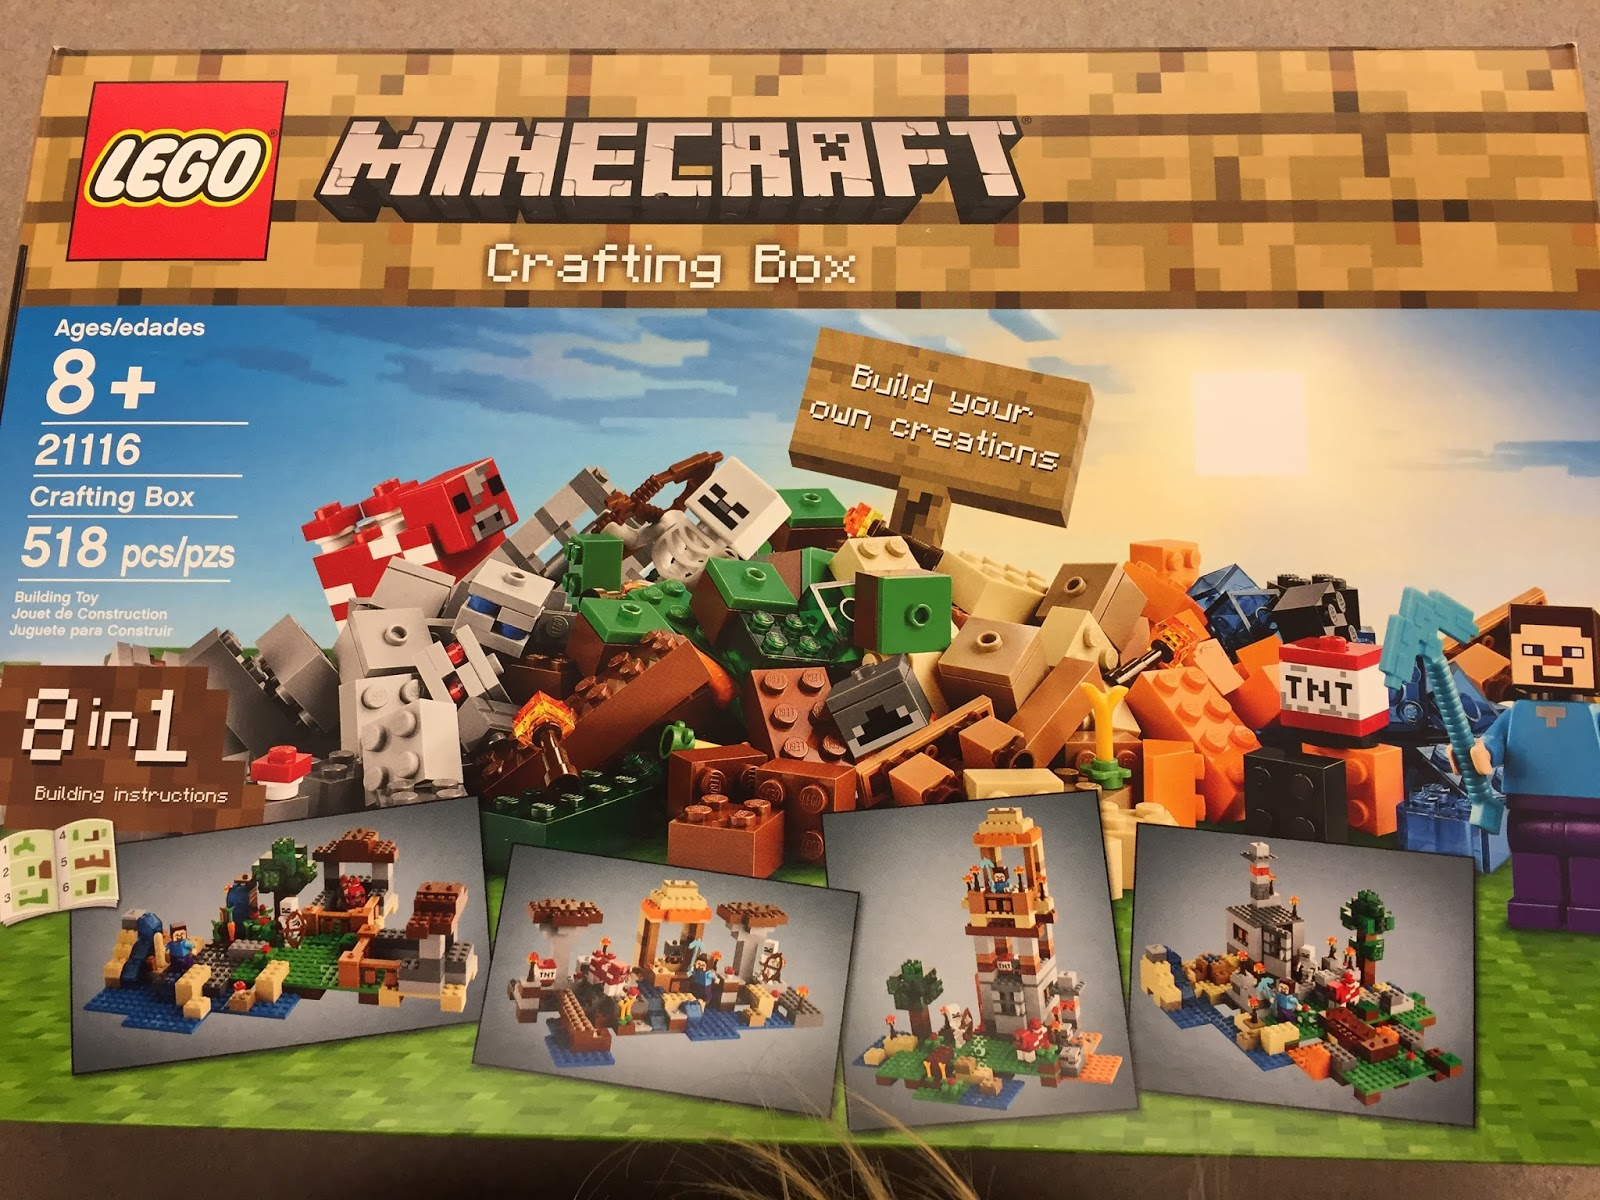 Obpl Youth Services Blog Lego League